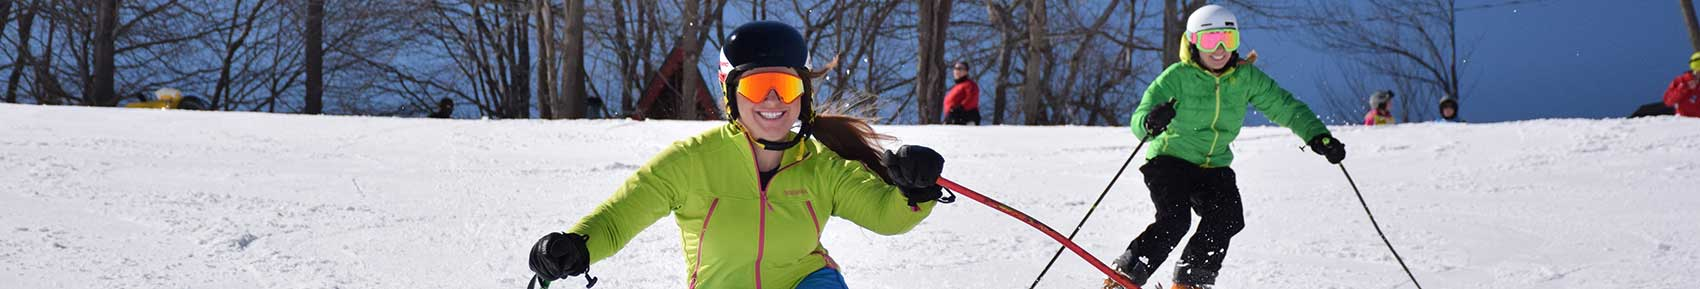 smiling-skiers